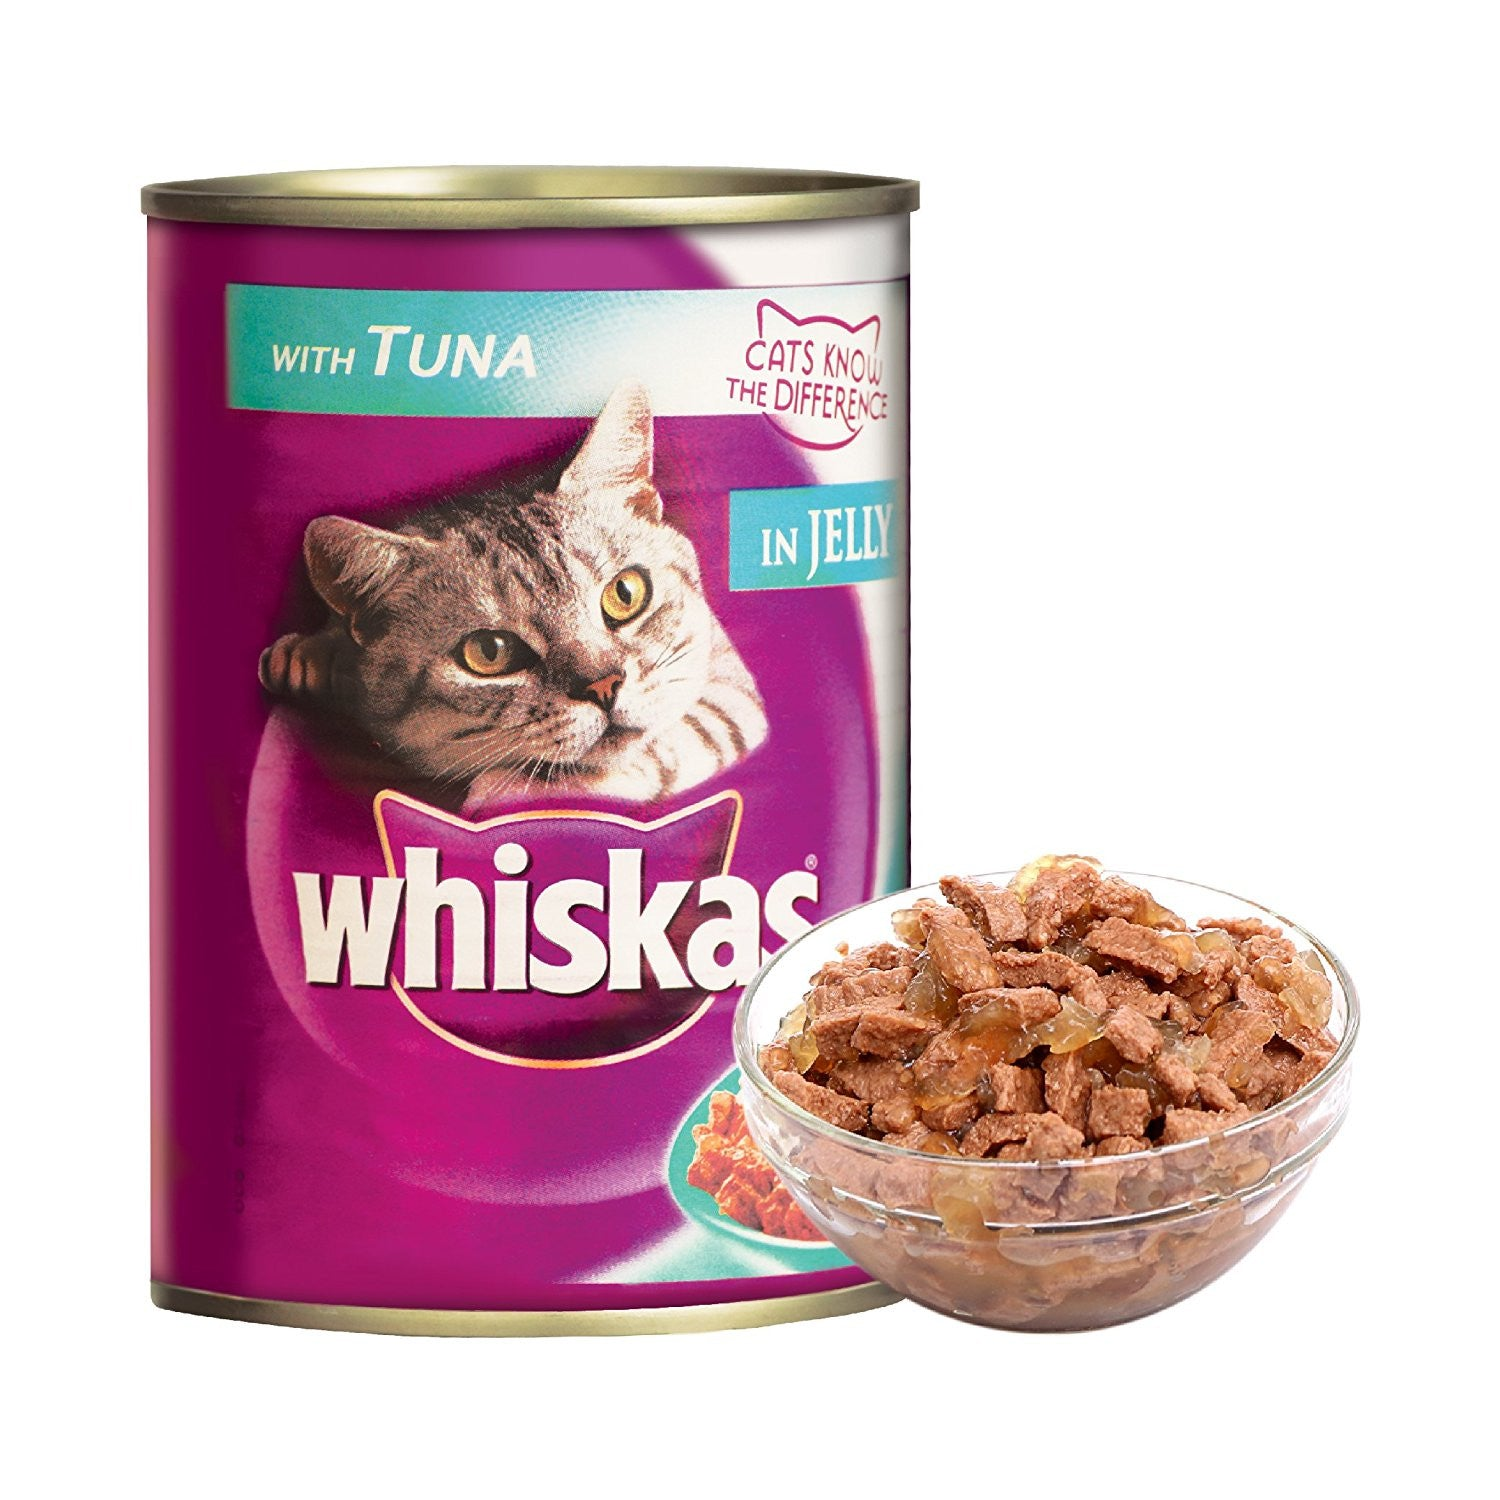 Is Whiskas Wet Cat Food Good For Cats